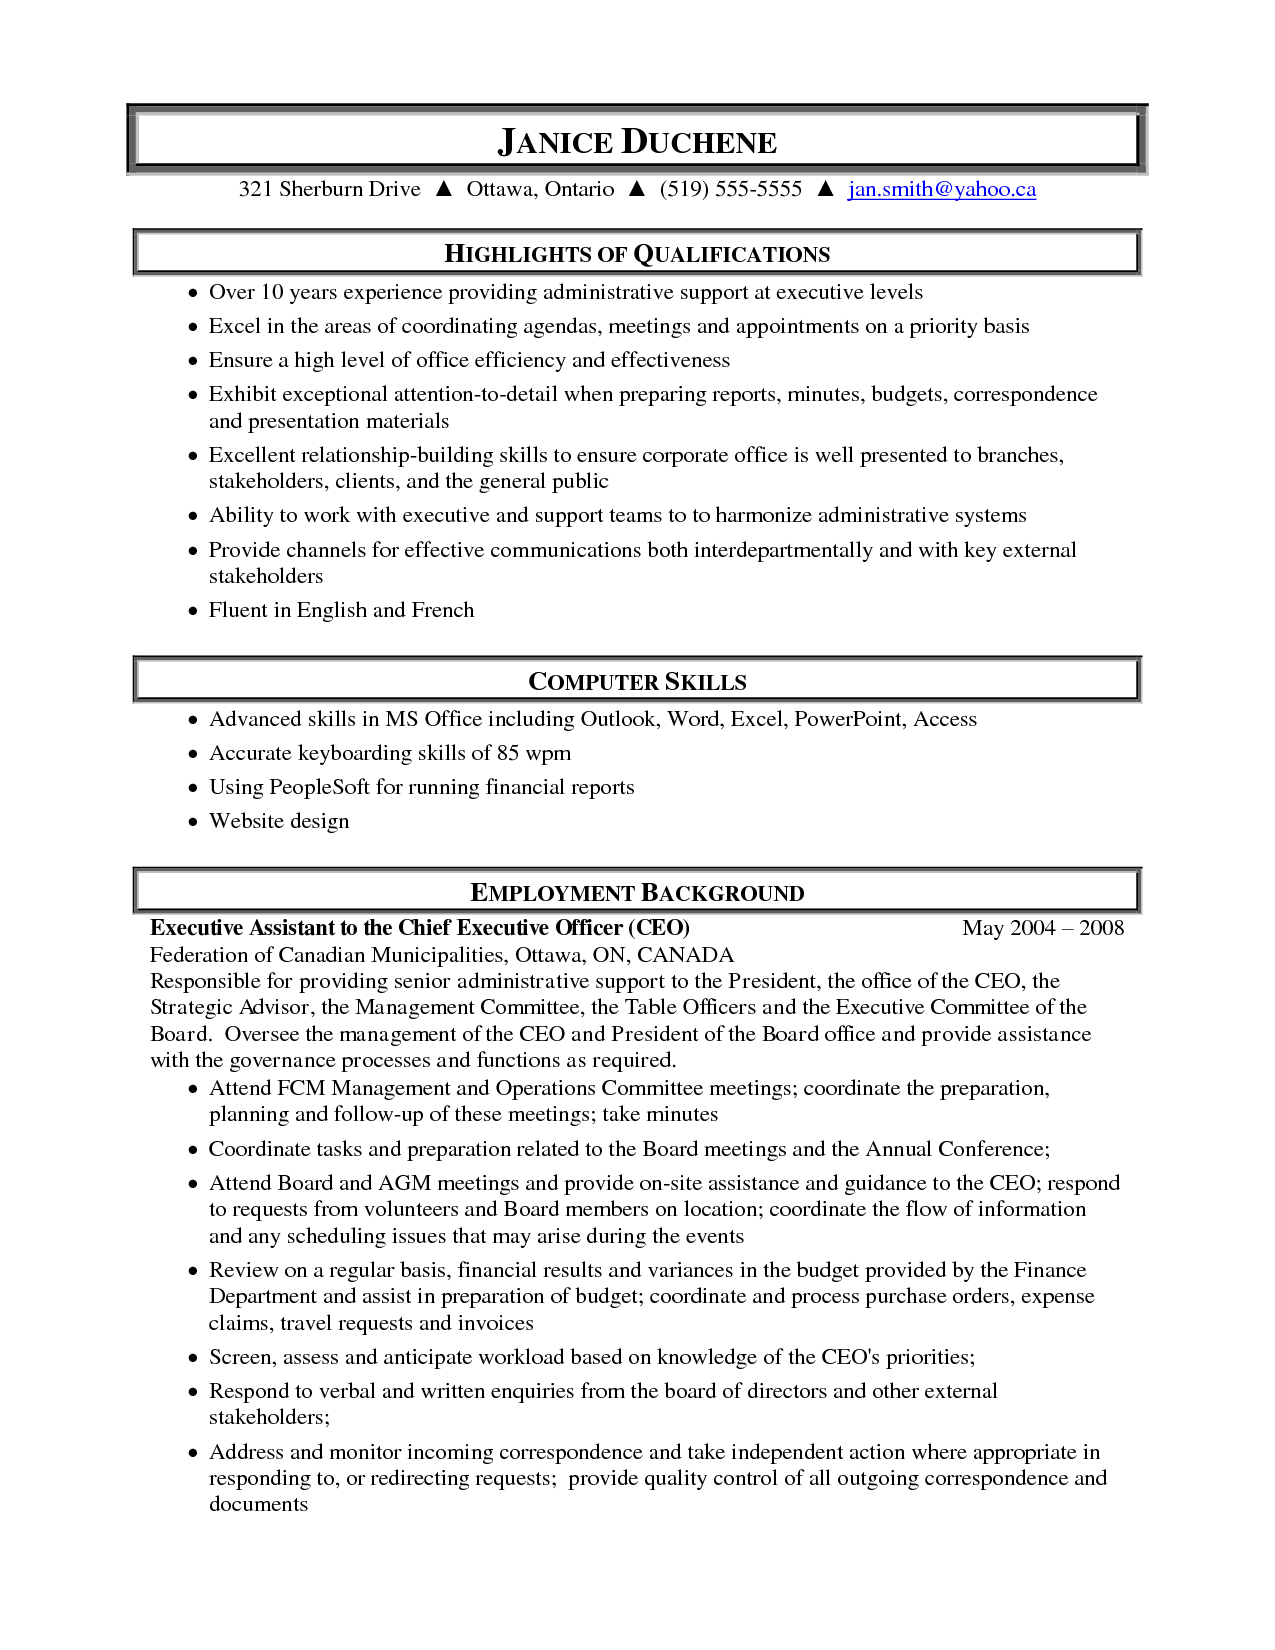 Good Medical Administrative Assistant Resume Samples Highlight Of Qualifications  Sample Administrative Assistant Resumes